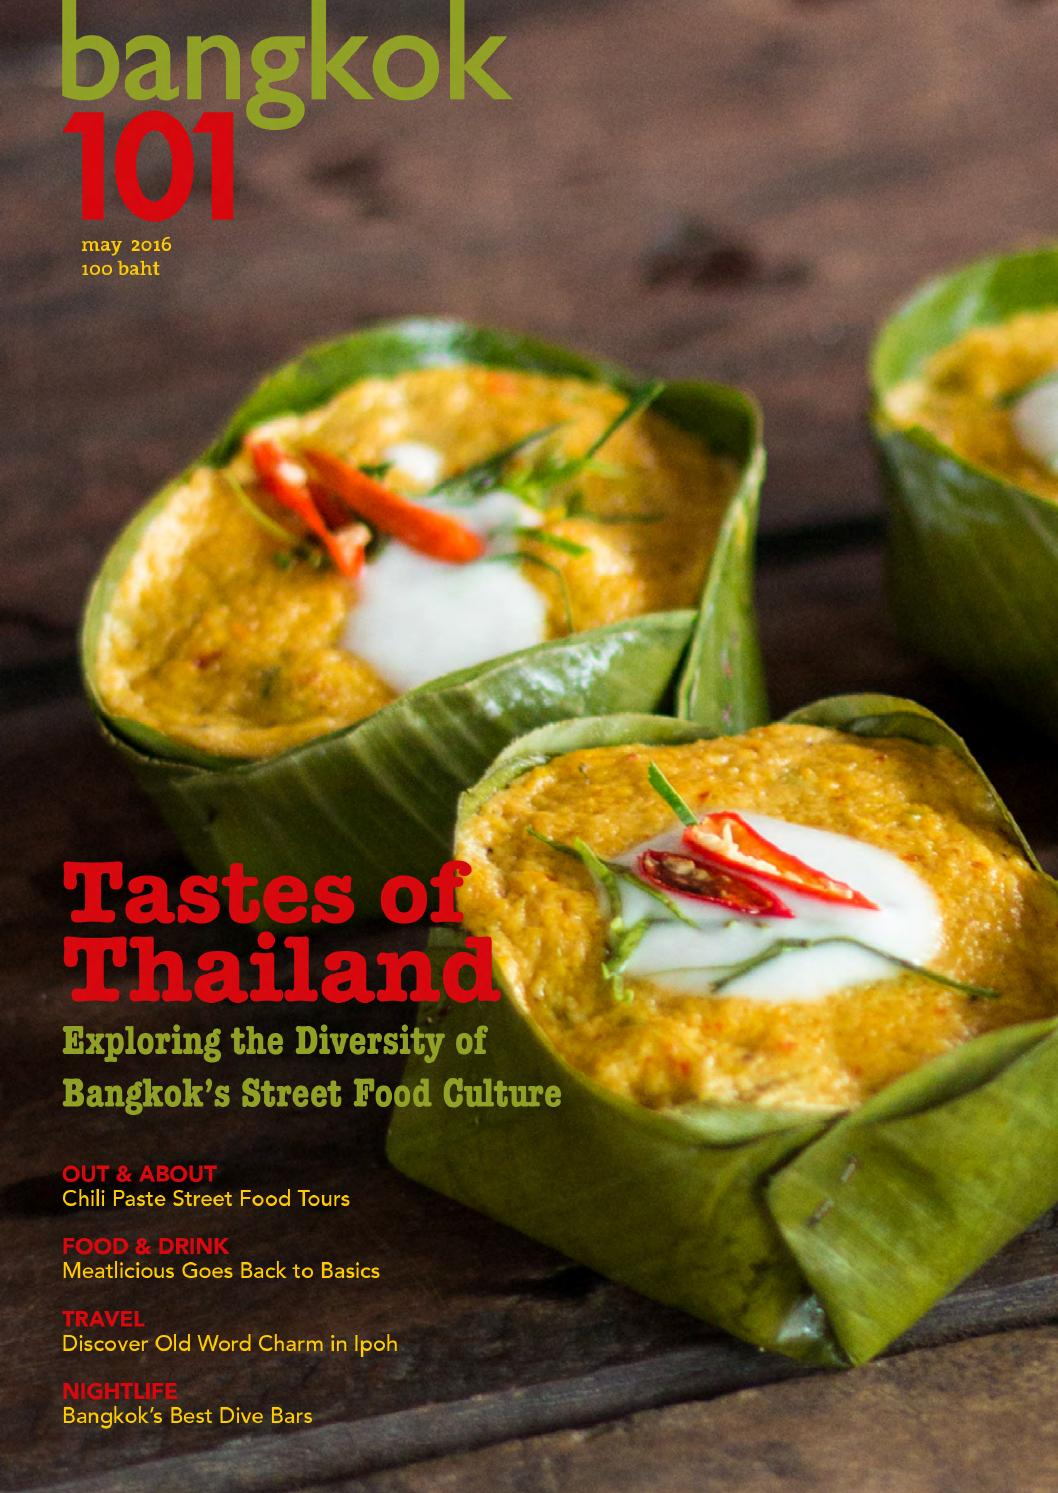 Bangkok 101 magazine may 2016 by talisman media issuu for 7 star thai cuisine